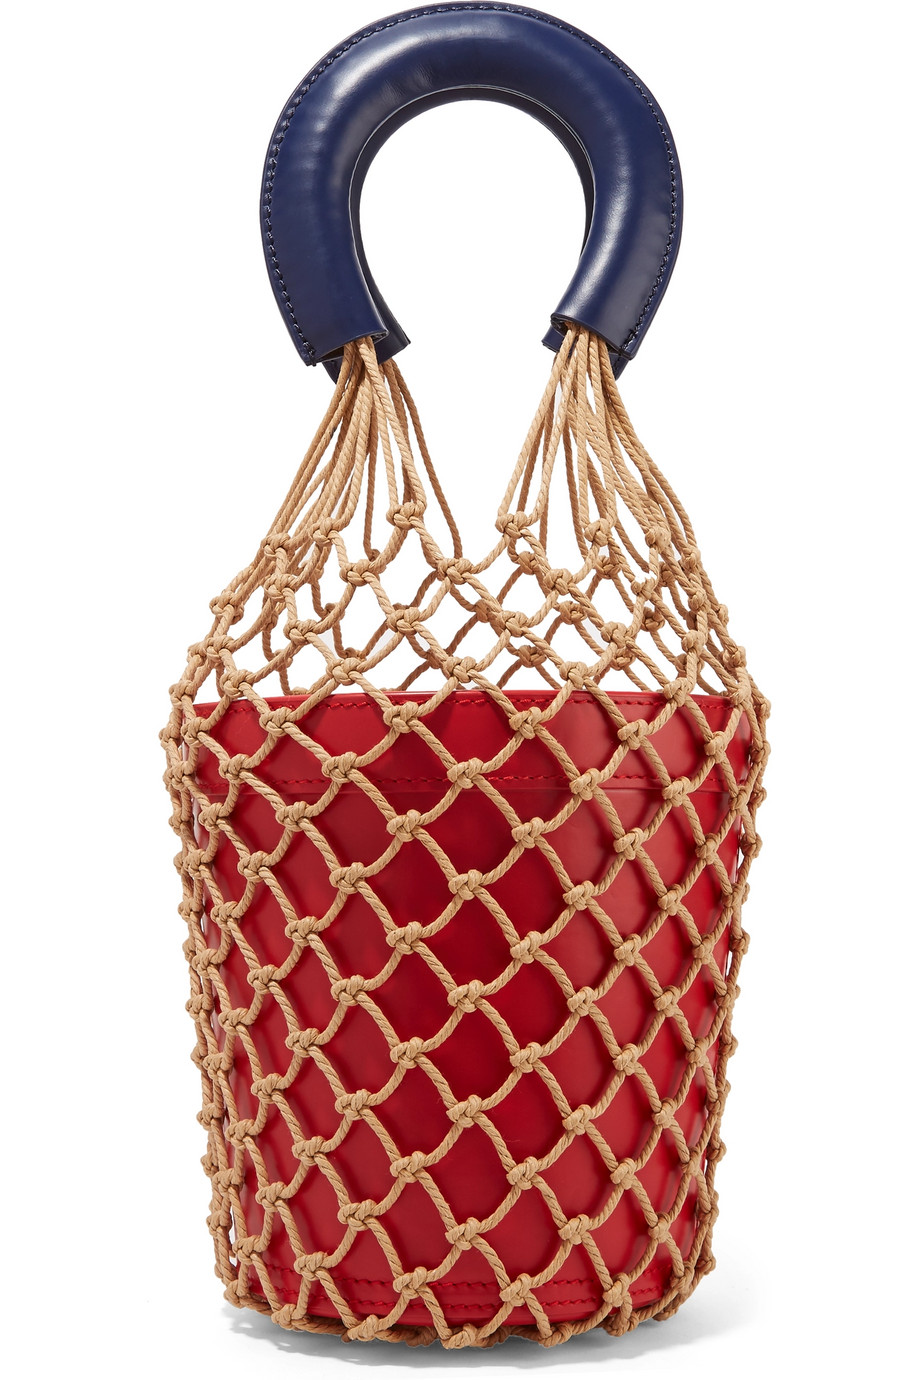 If you like the net look but are in need of a sturdier option,  Staud's  bucket meets net bag is the ticket.